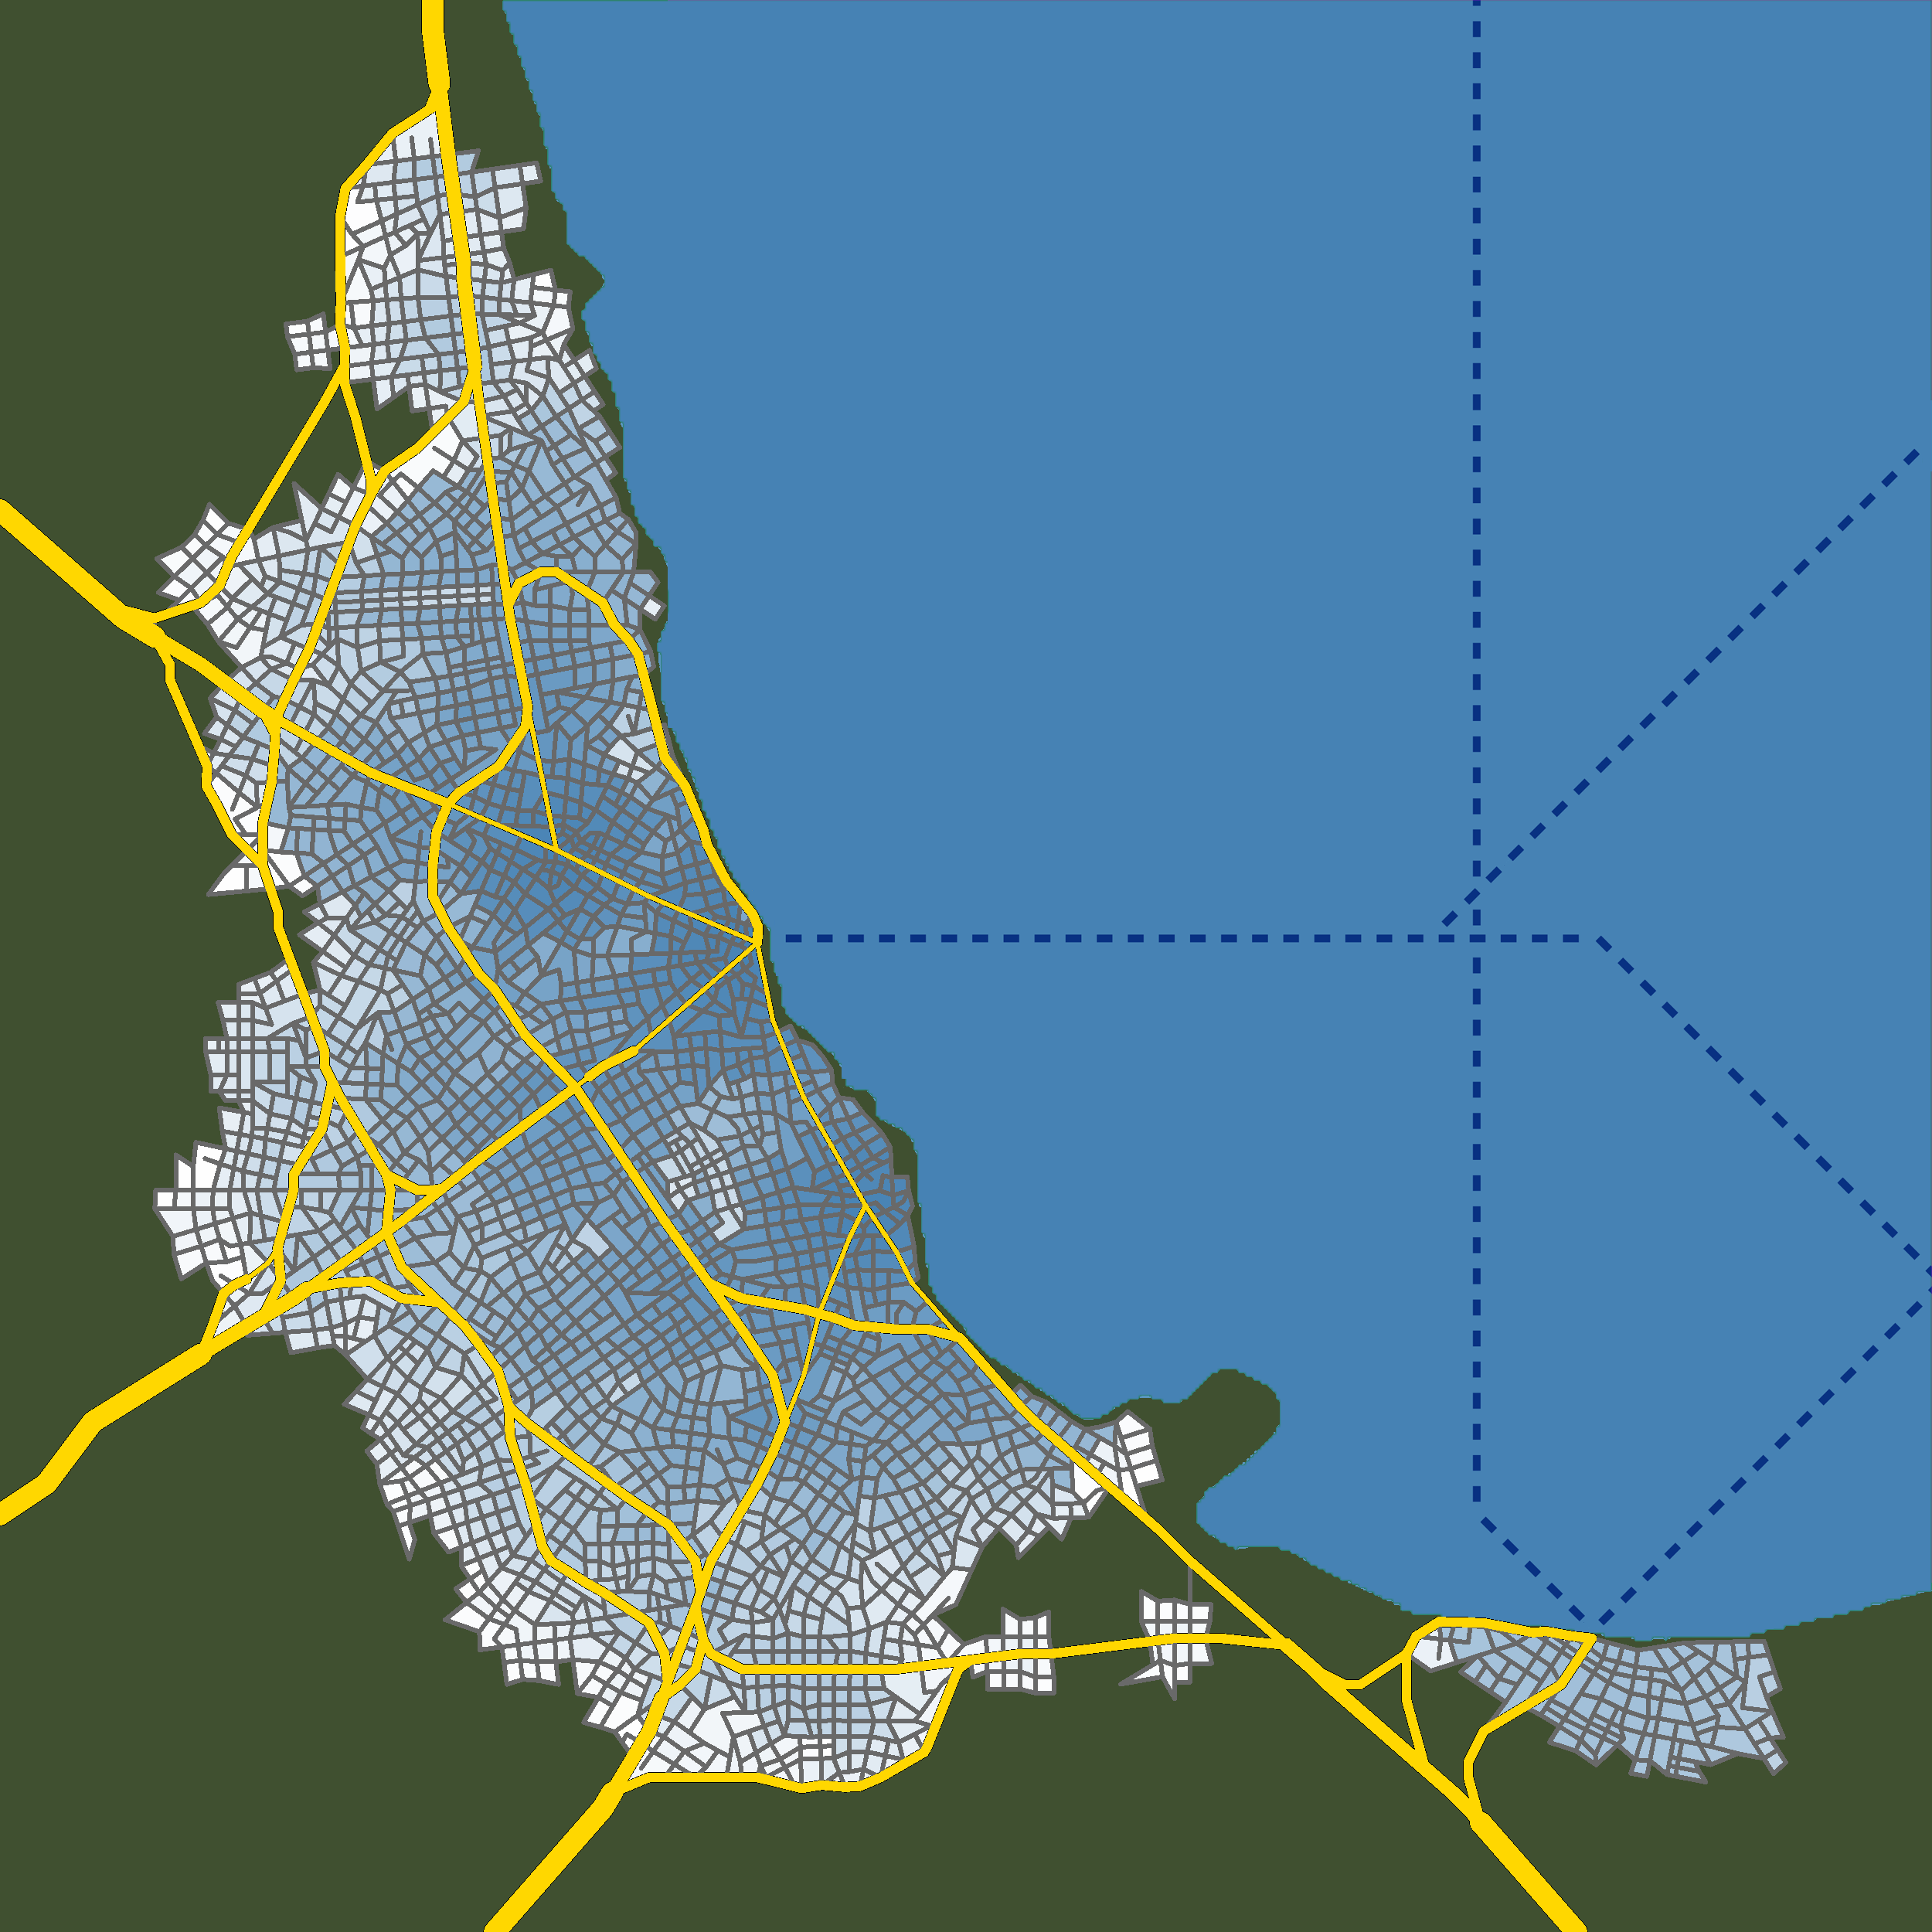 Procedural Modelling of Urban Road Networks